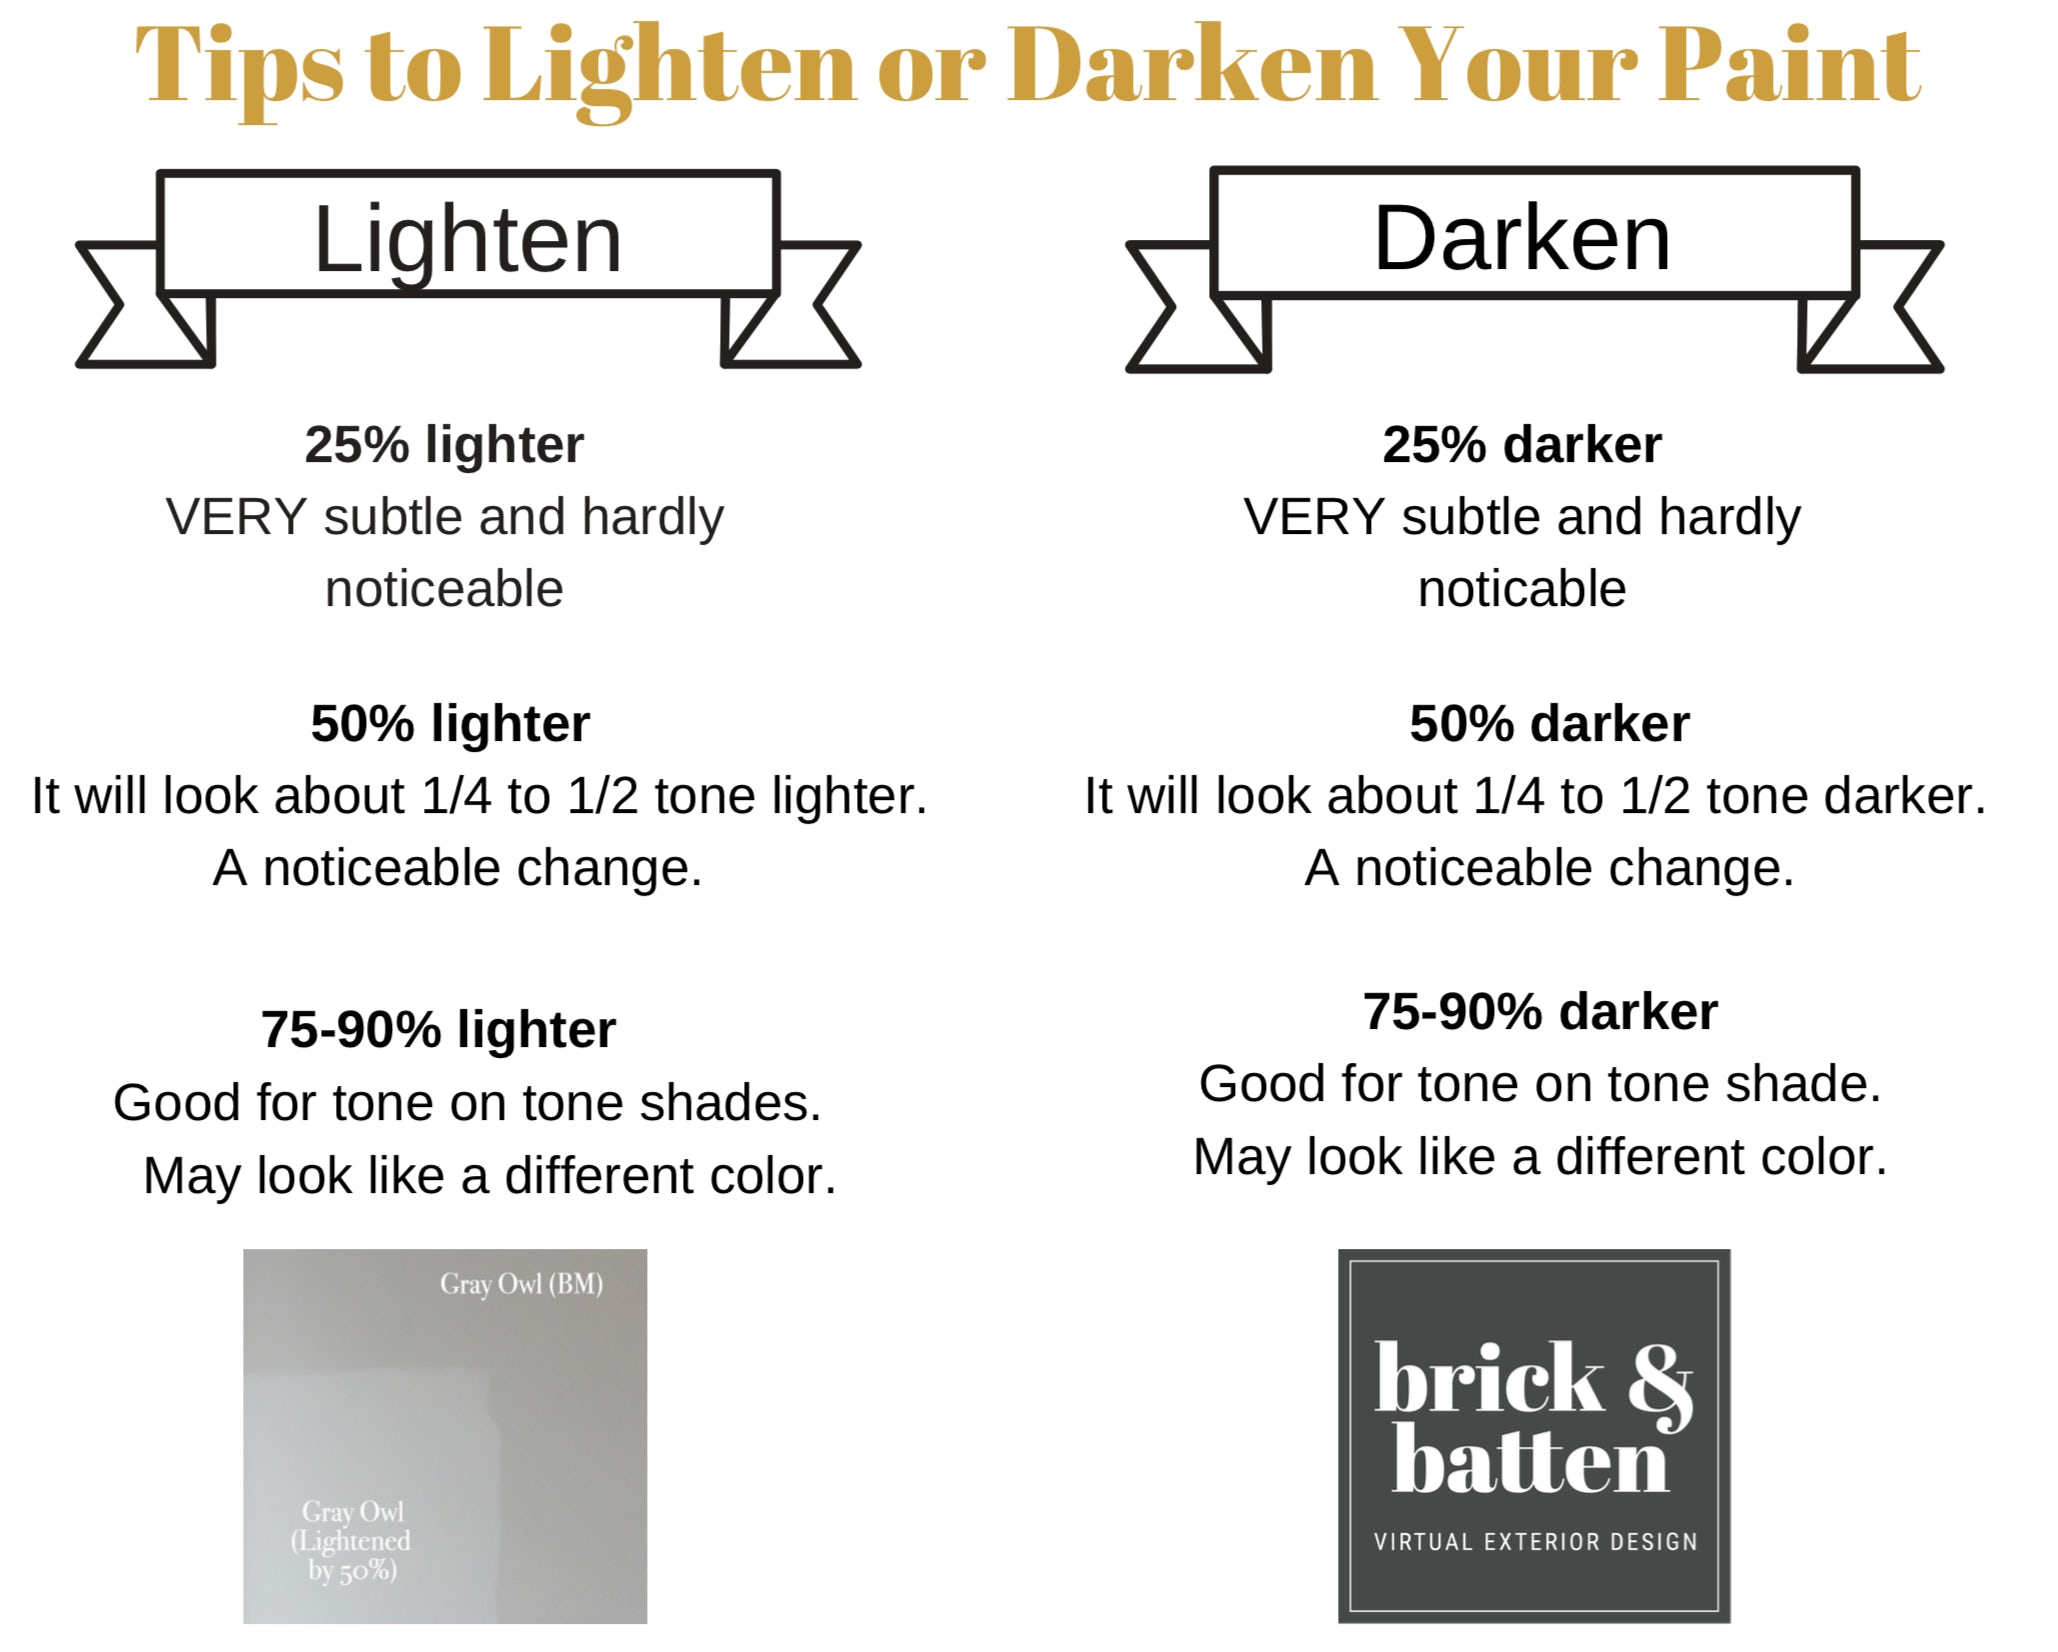 lighten or darken paint